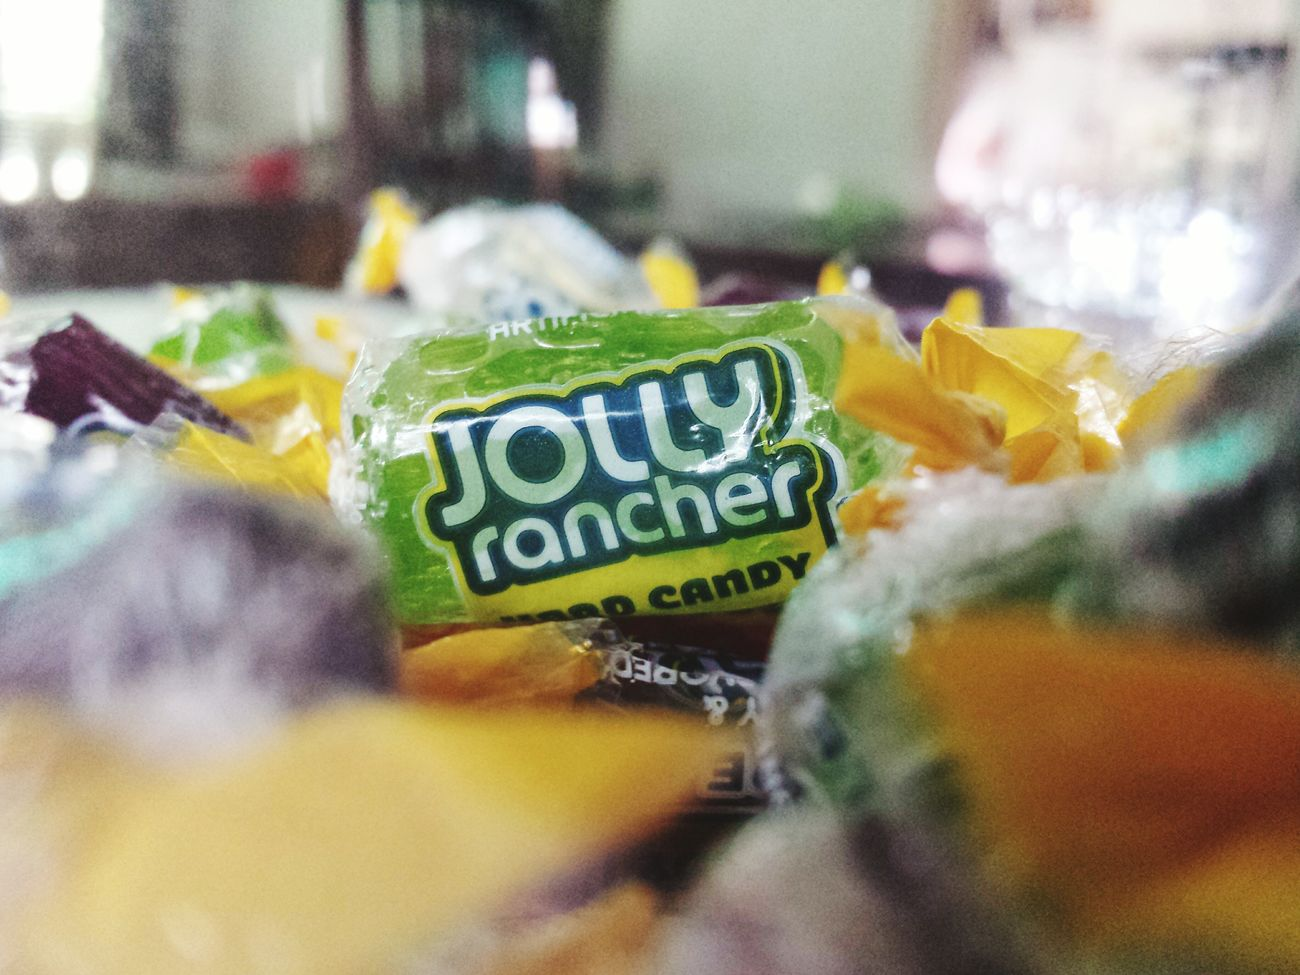 guilty pleasure. NotAnAd Candy Jolly Rancher Green Glass